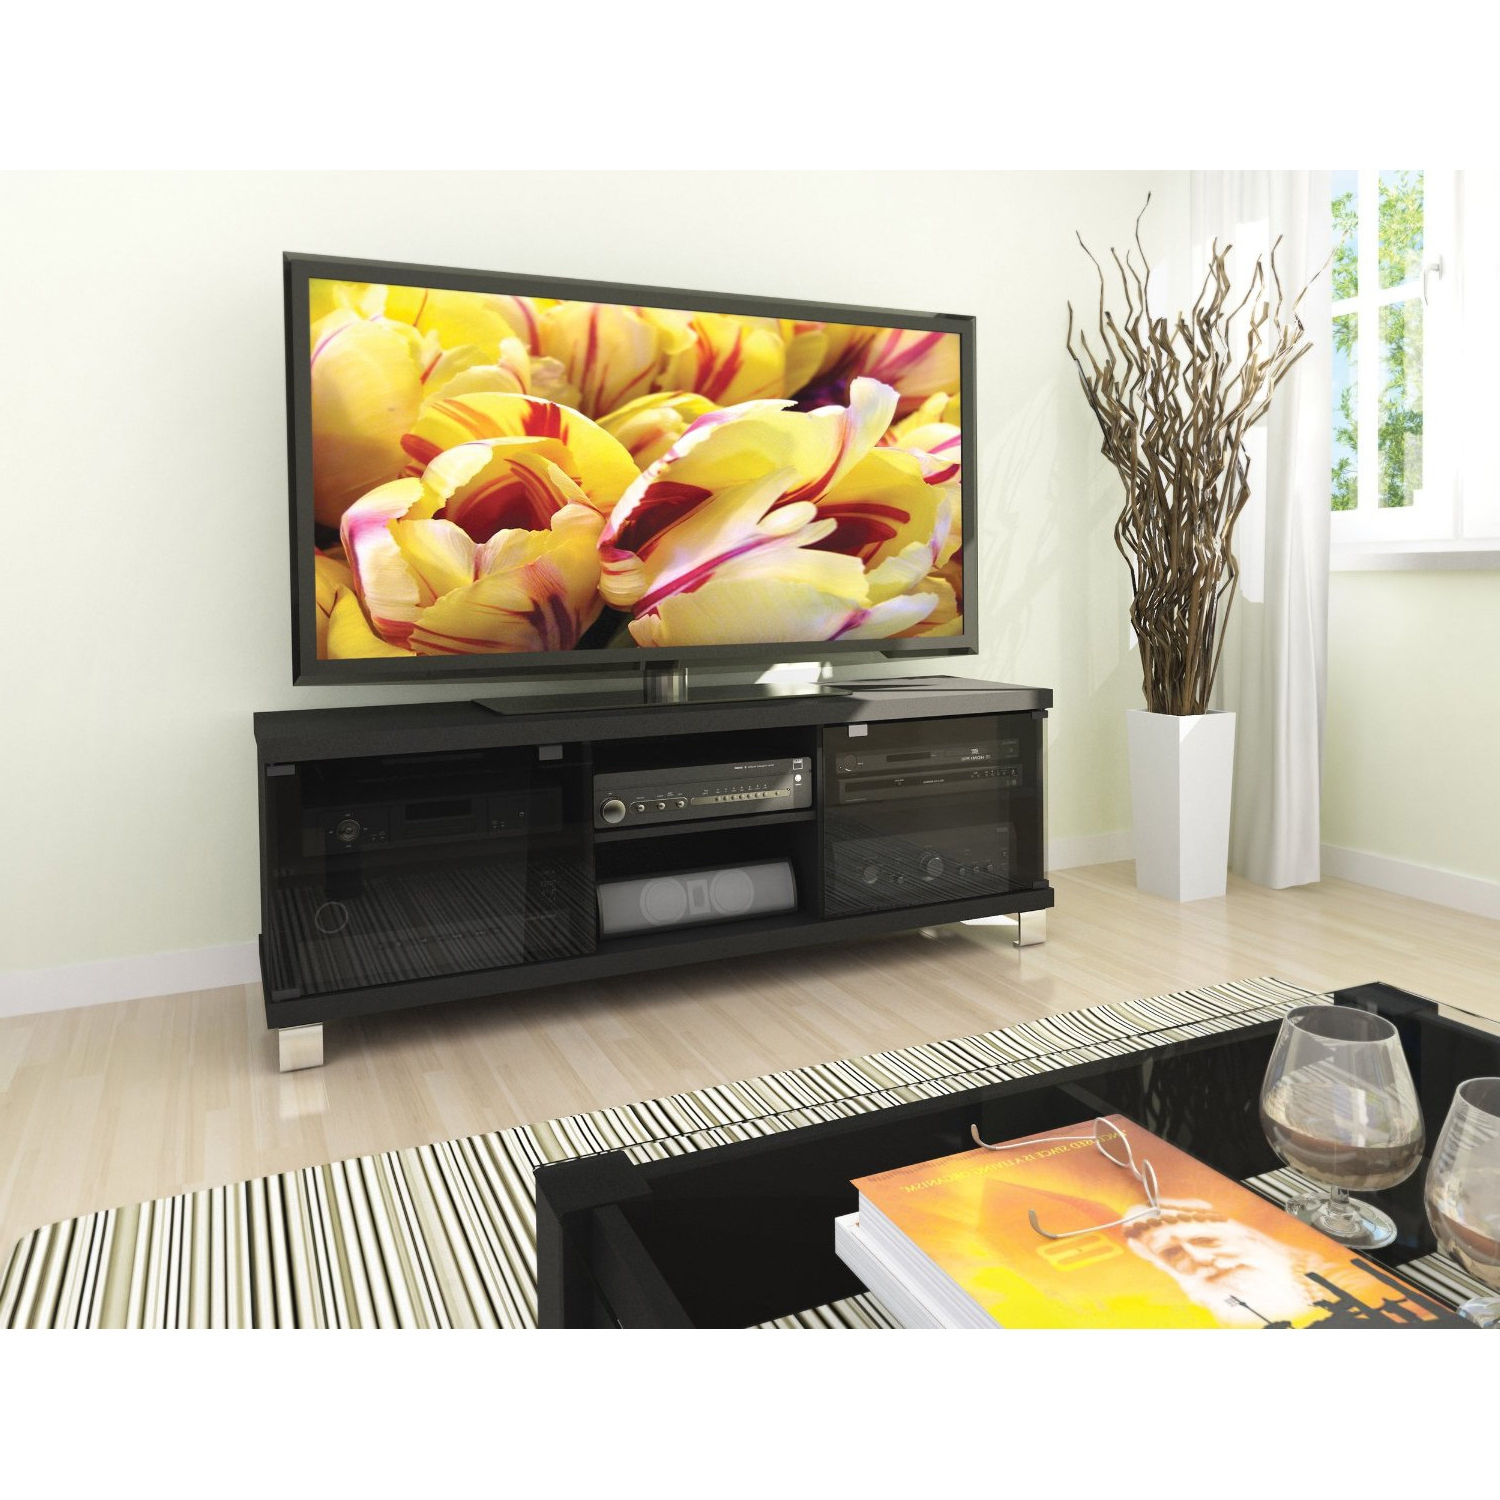 Modern Black Tv Stand With Glass Doors – Fits Up To 68 Inch Tv Regarding Contemporary Black Tv Stands Corner Glass Shelf (View 4 of 20)